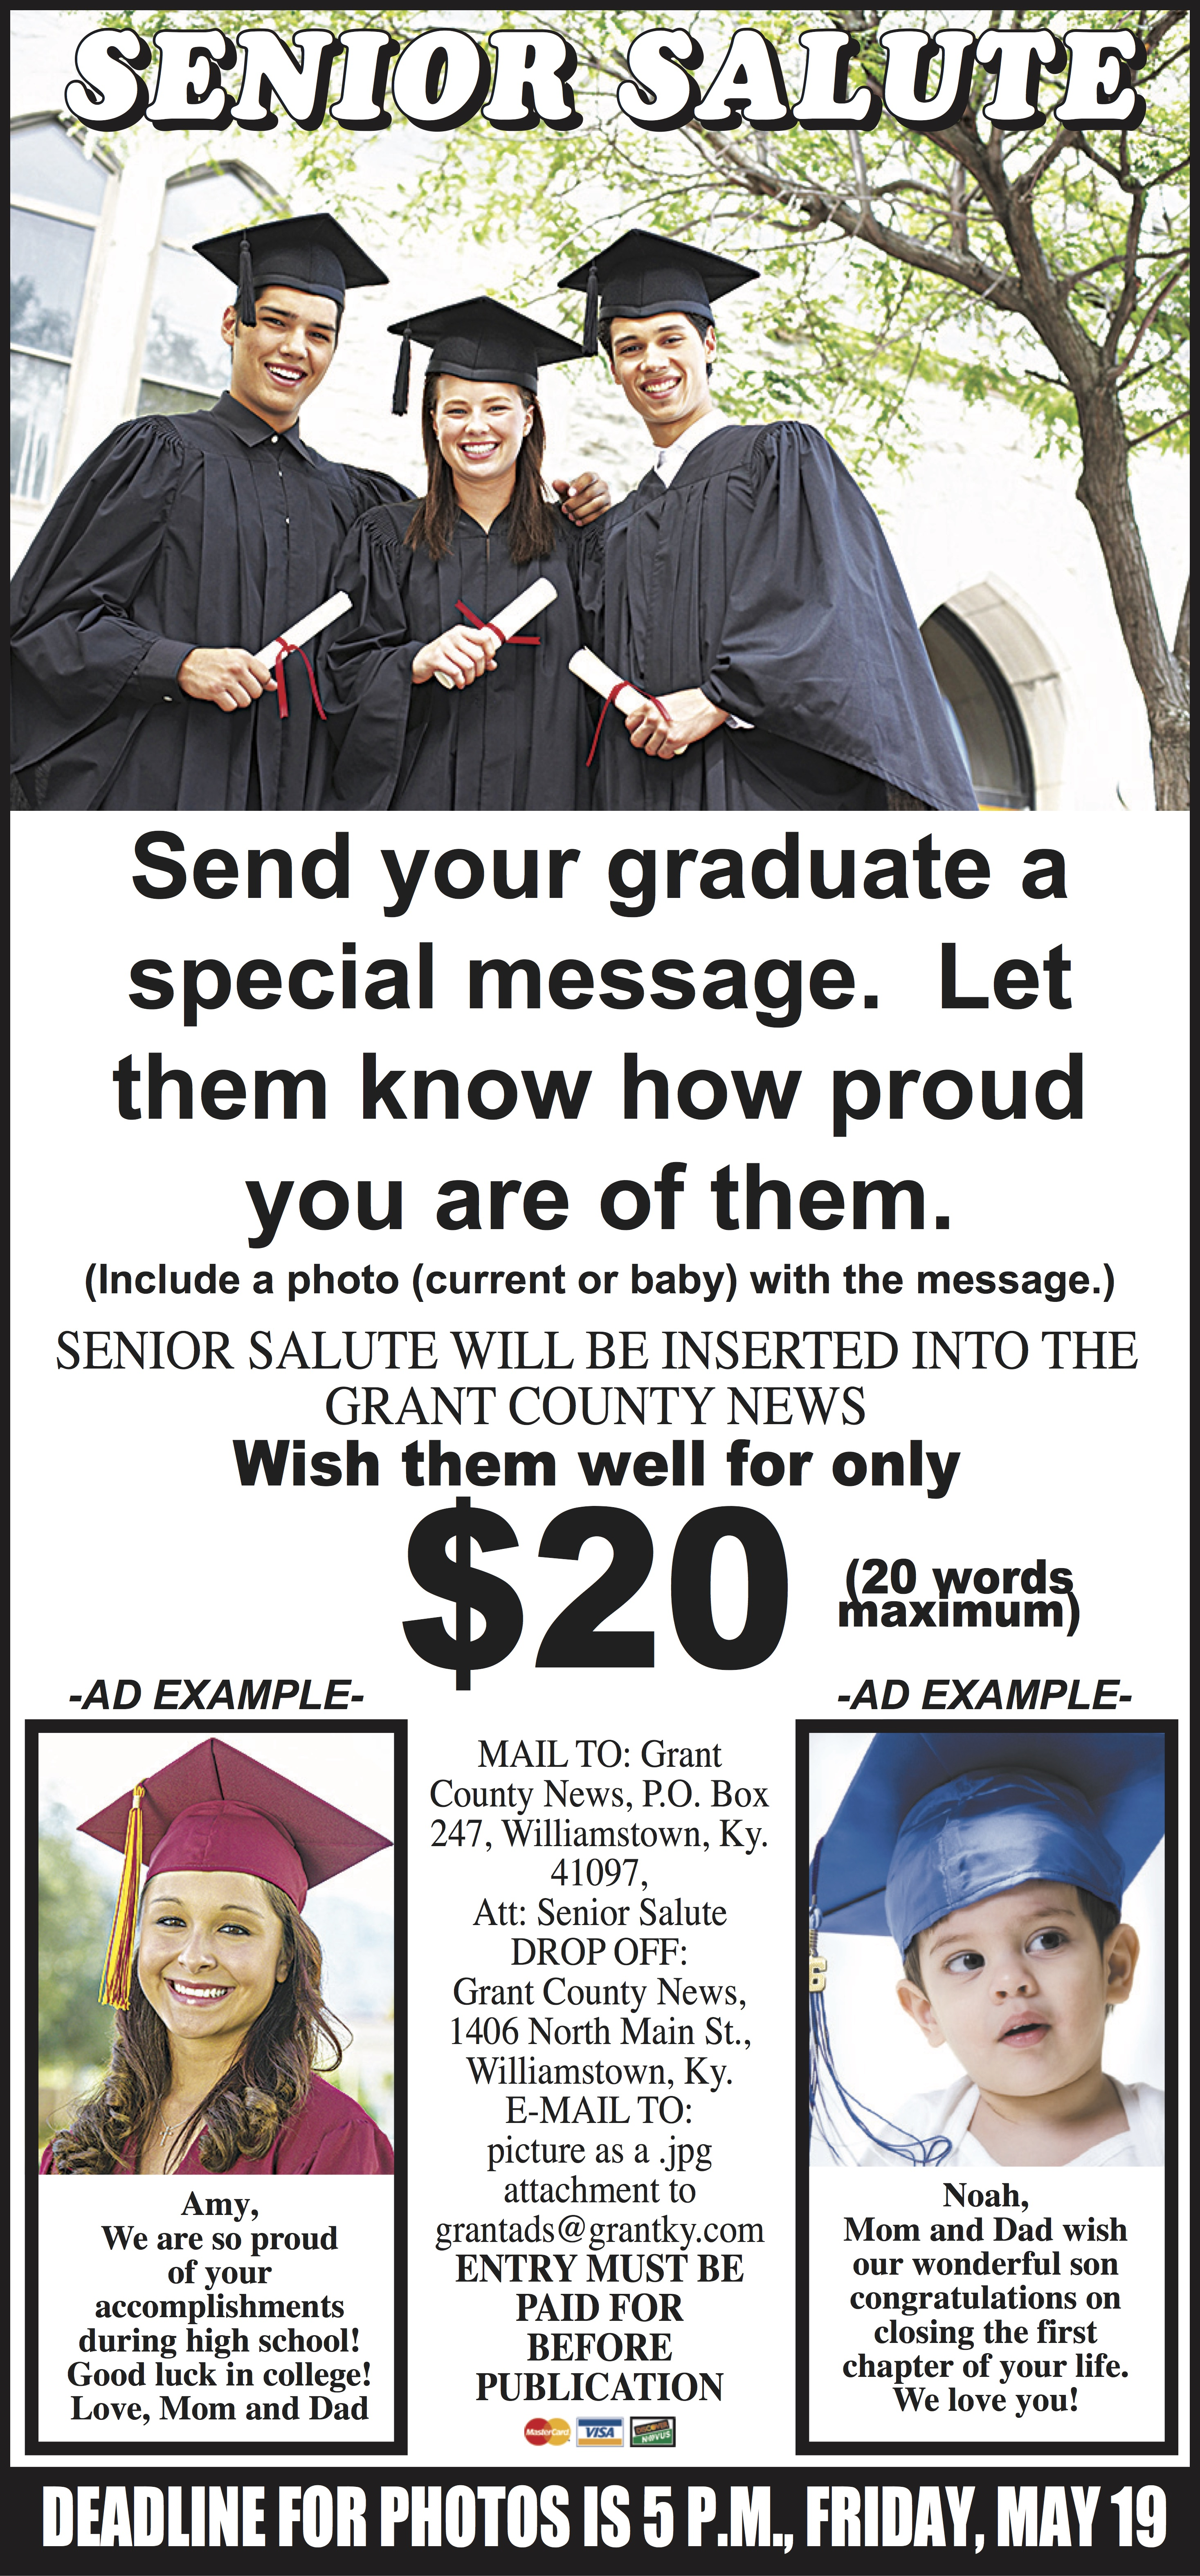 Senior Salute Information from the Grant County News